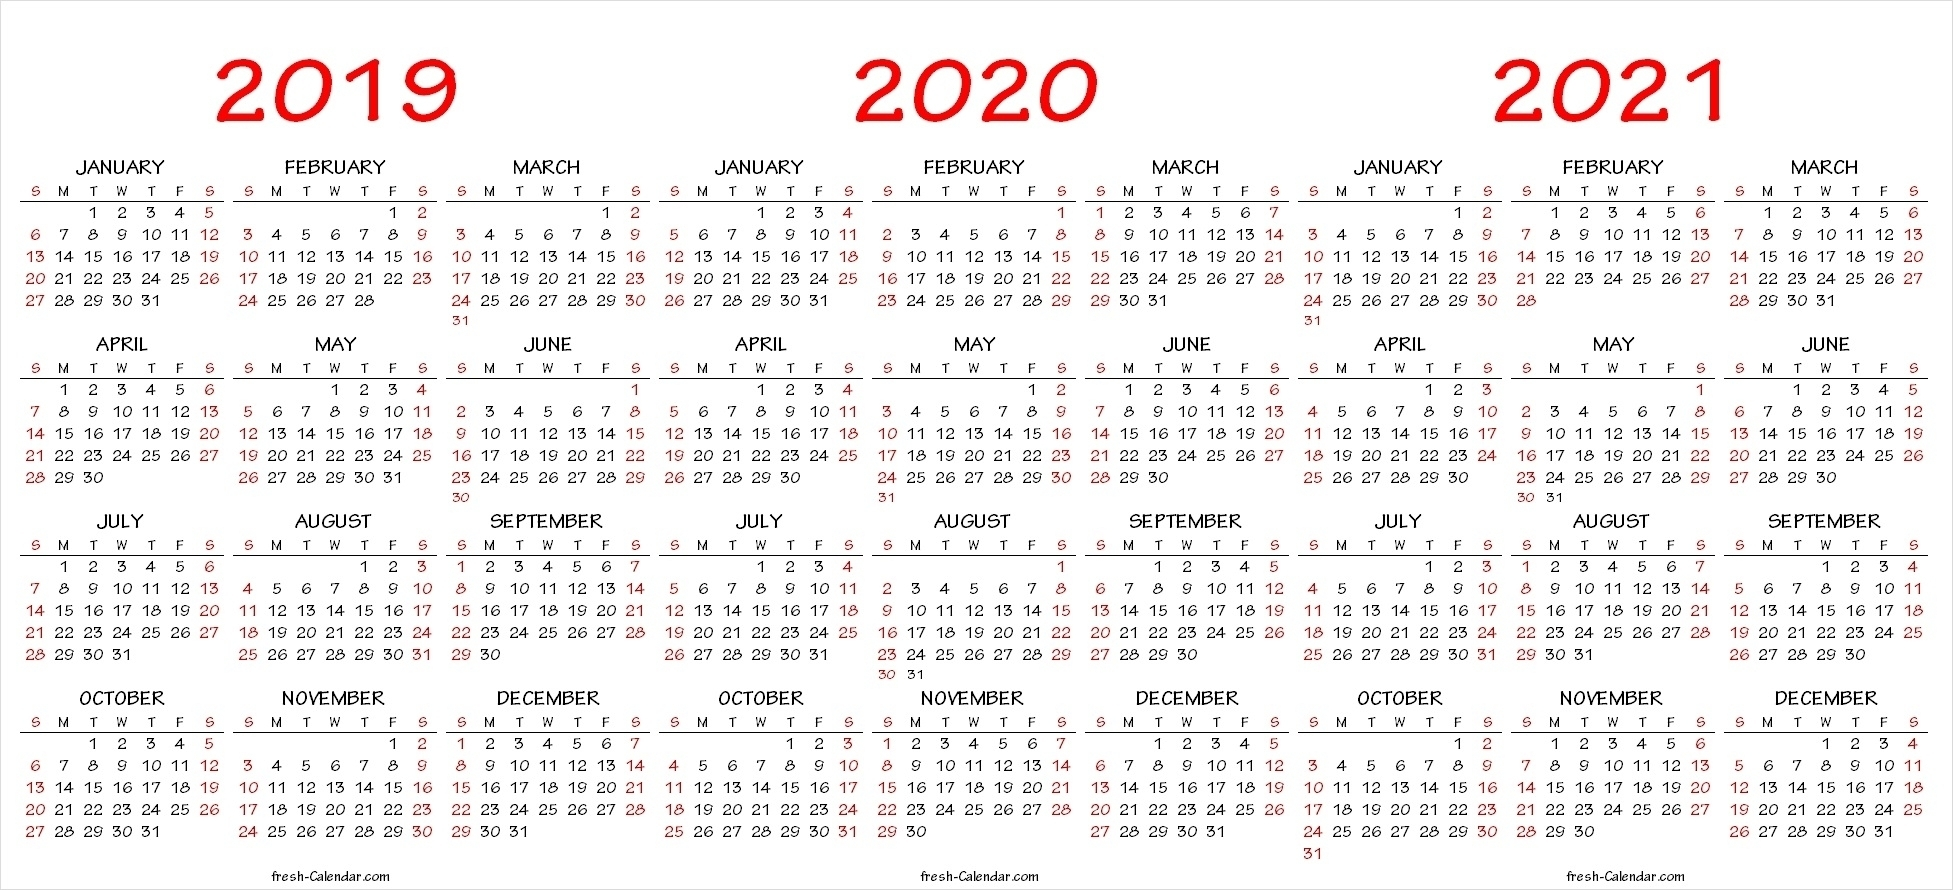 Dandy 3 Year Printable Calendar 2019 To 2021 : Mini Calendar intended for Free Printable Calendar For 2019 2020 2021